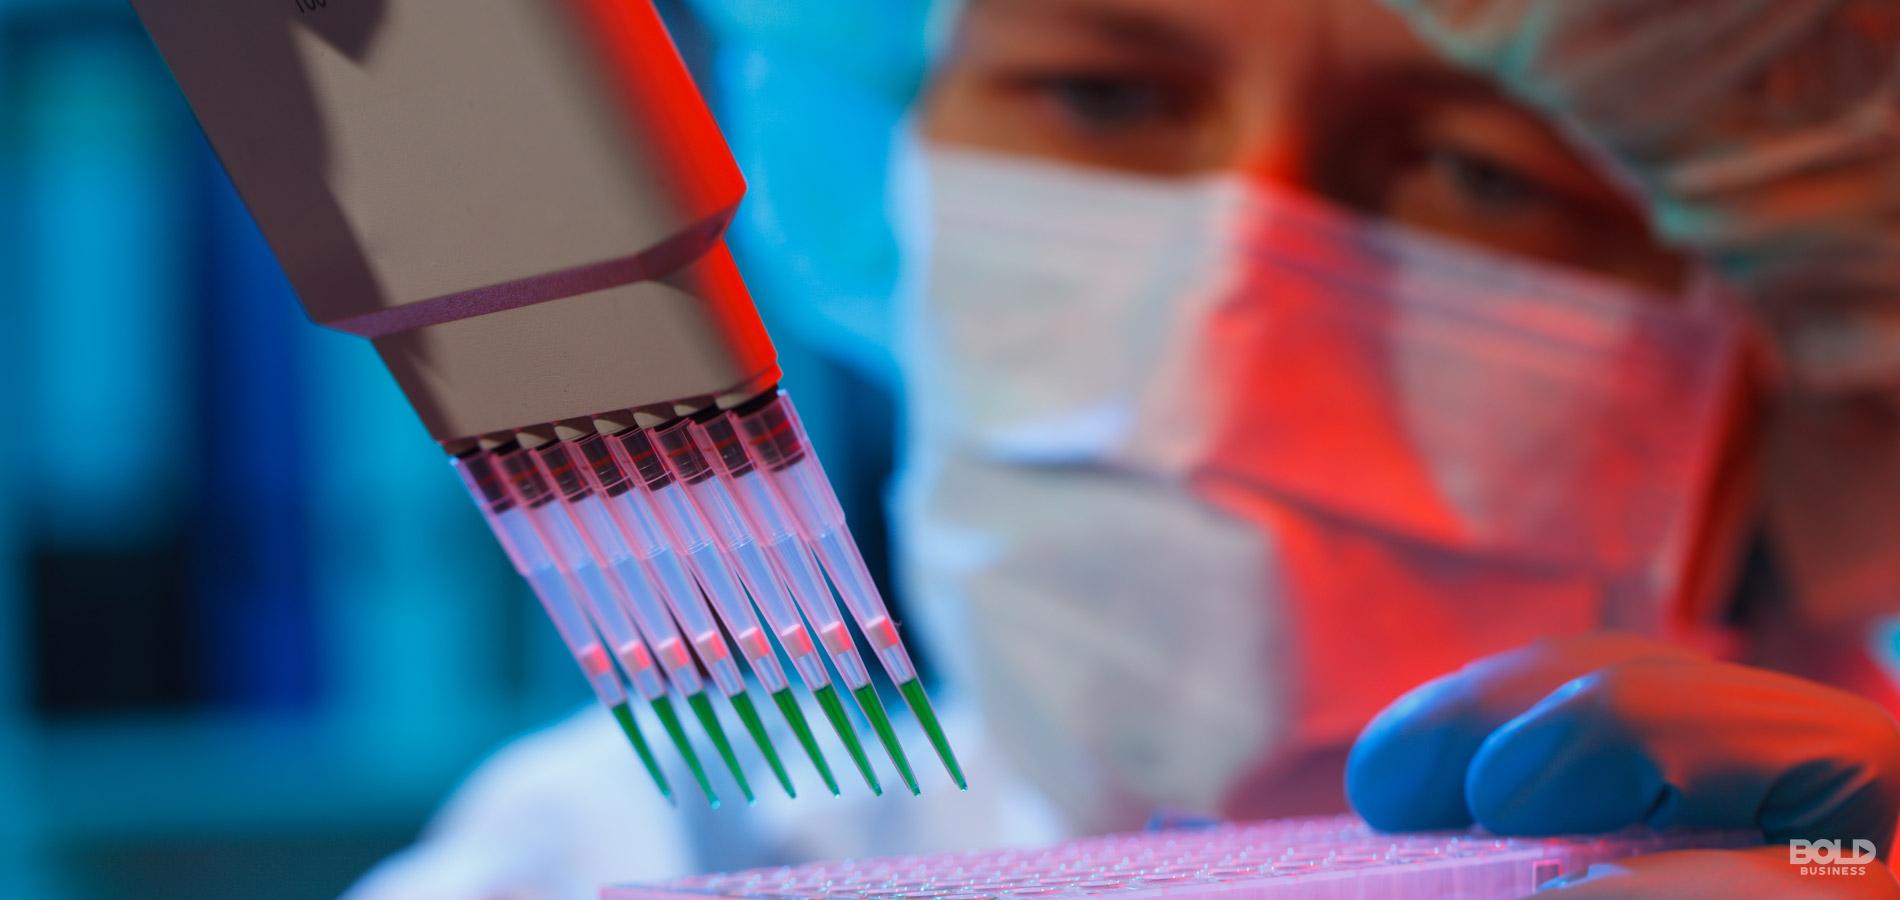 image featuring a researcher doing tests for stem cell research